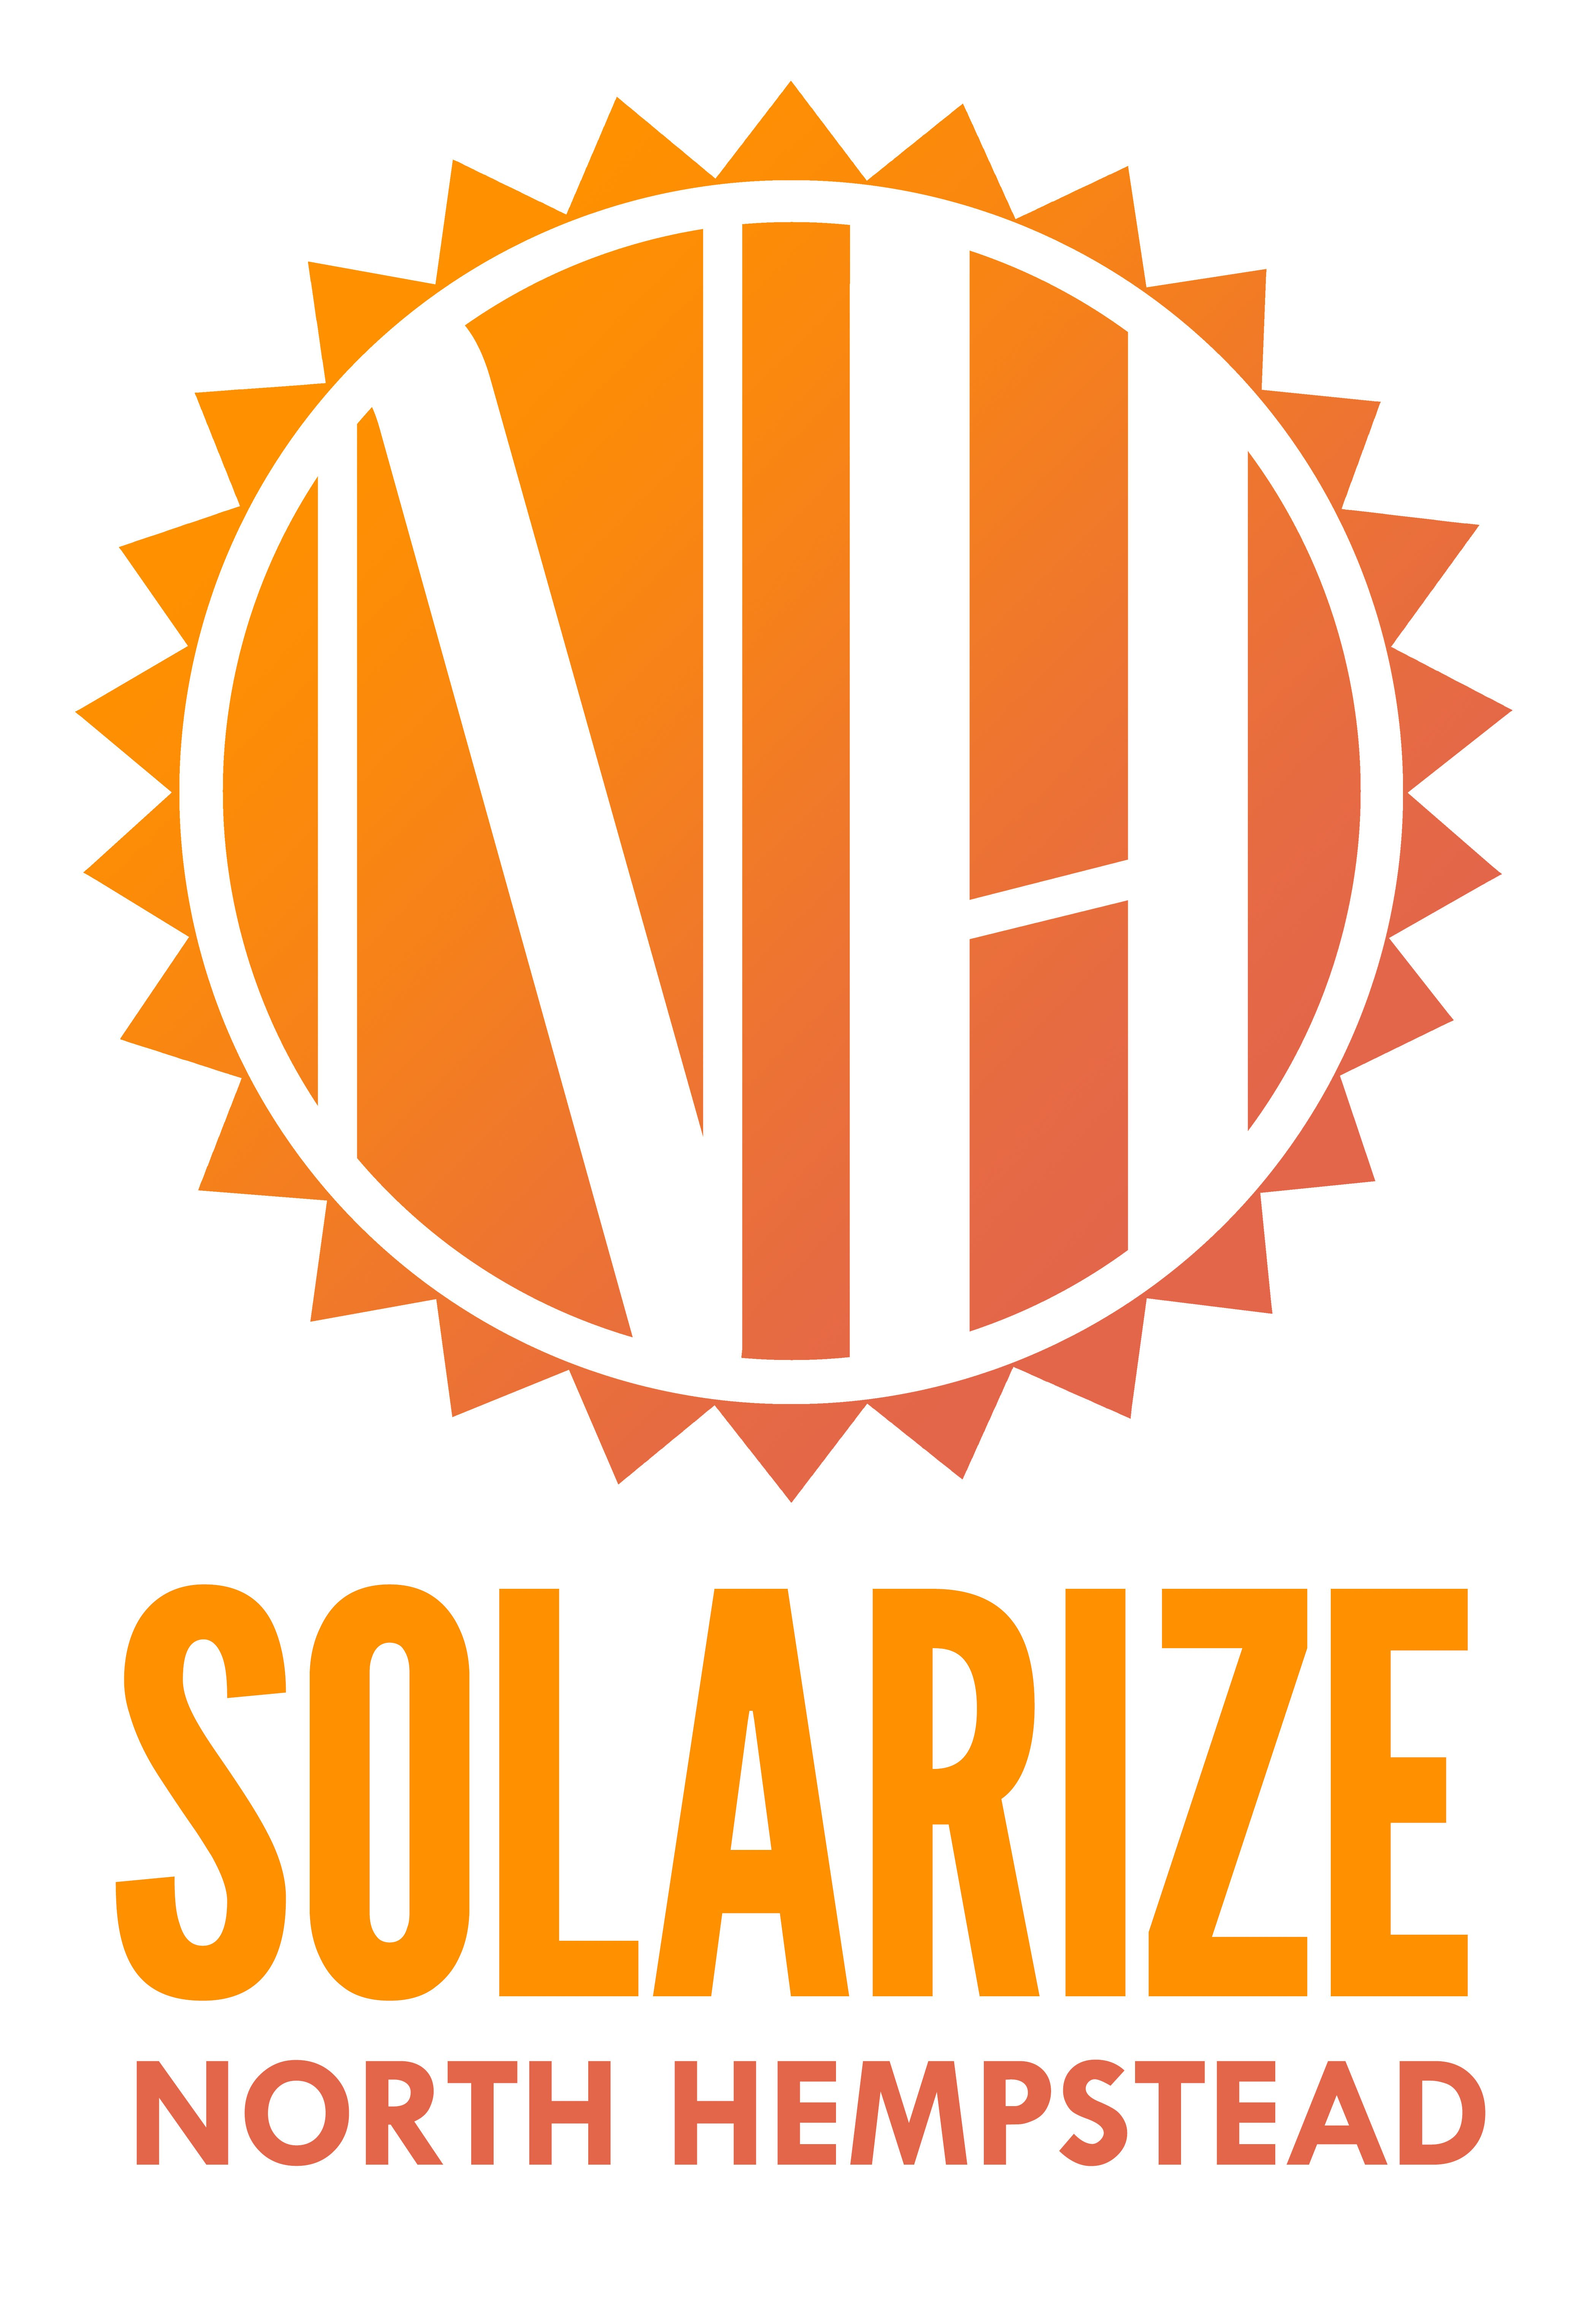 Solarize North Hempstead Launched